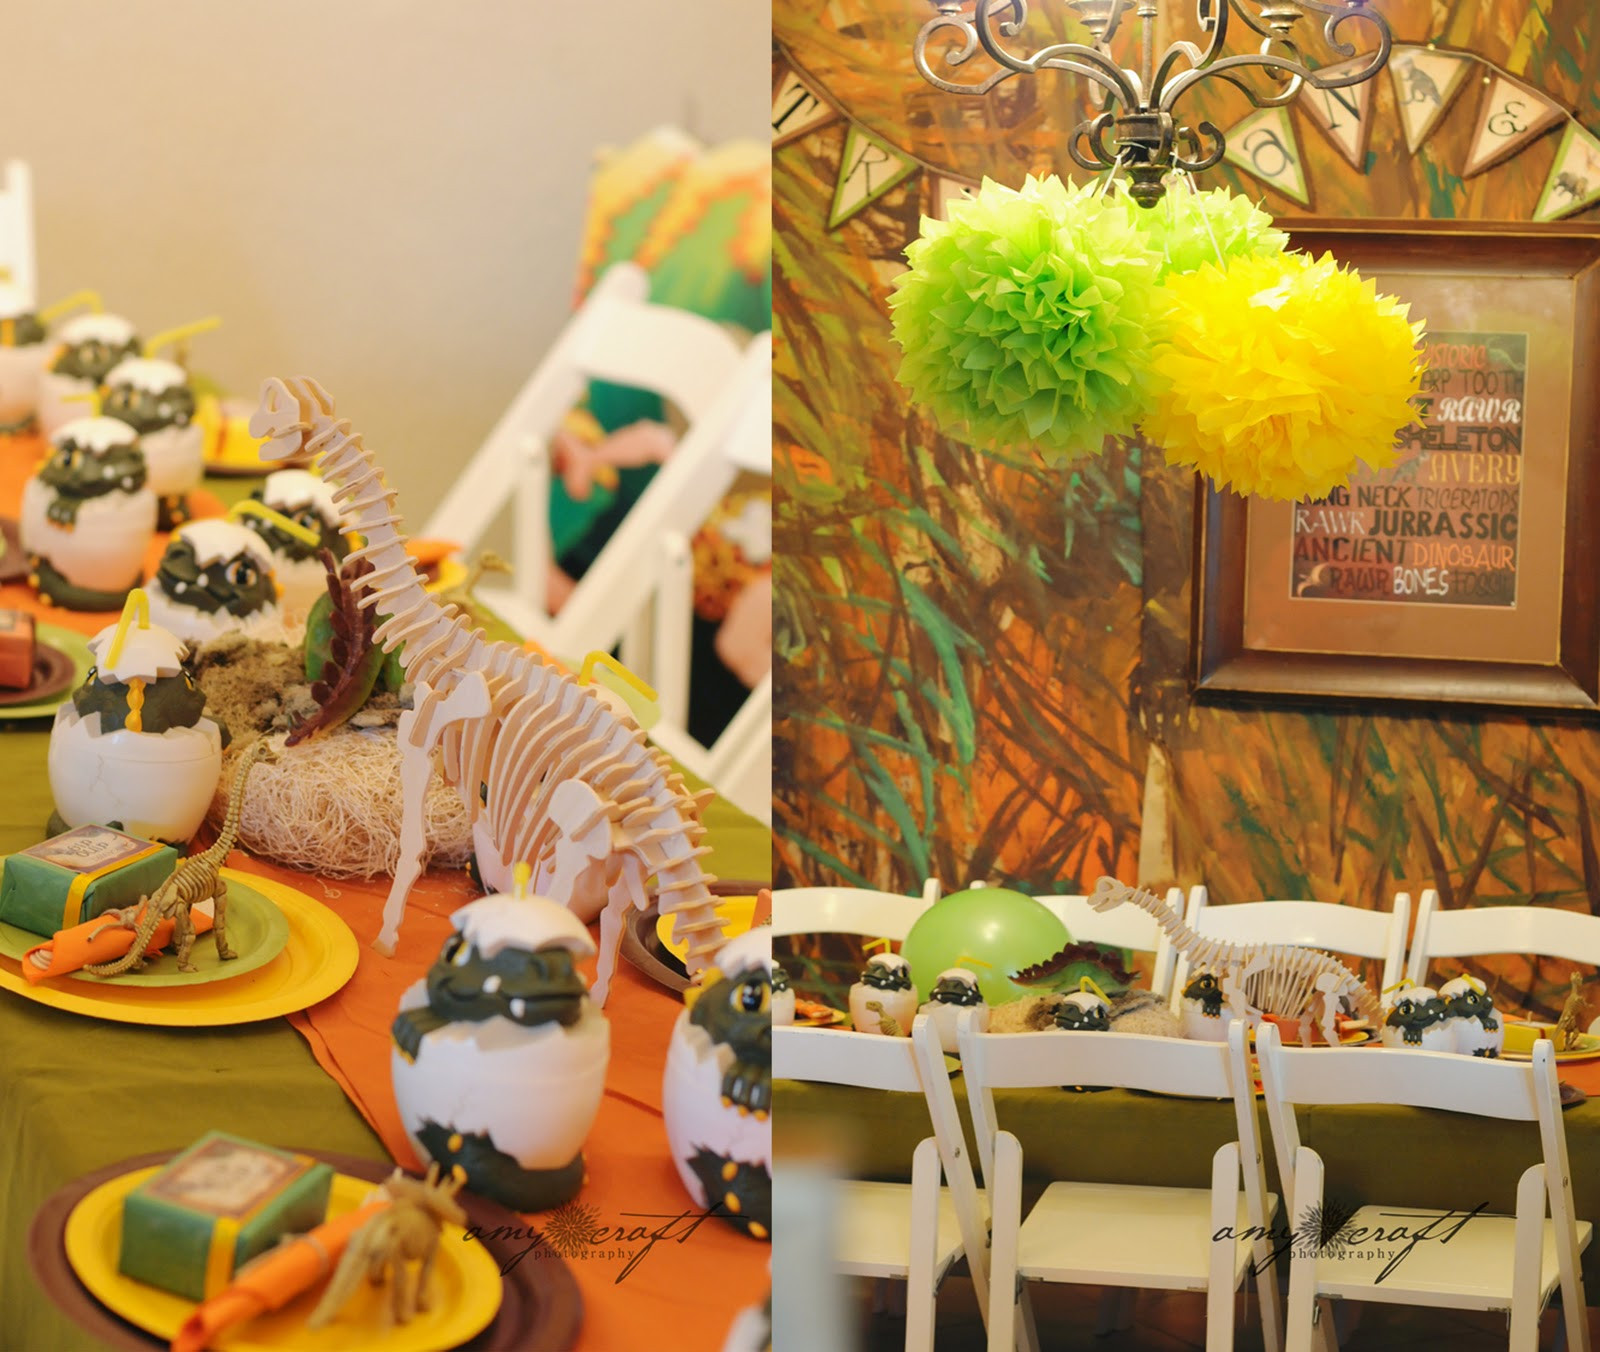 Best ideas about Dinosaur Birthday Party Decorations . Save or Pin Kara s Party Ideas Rustic Dinosaur Twins Birthday Party Now.